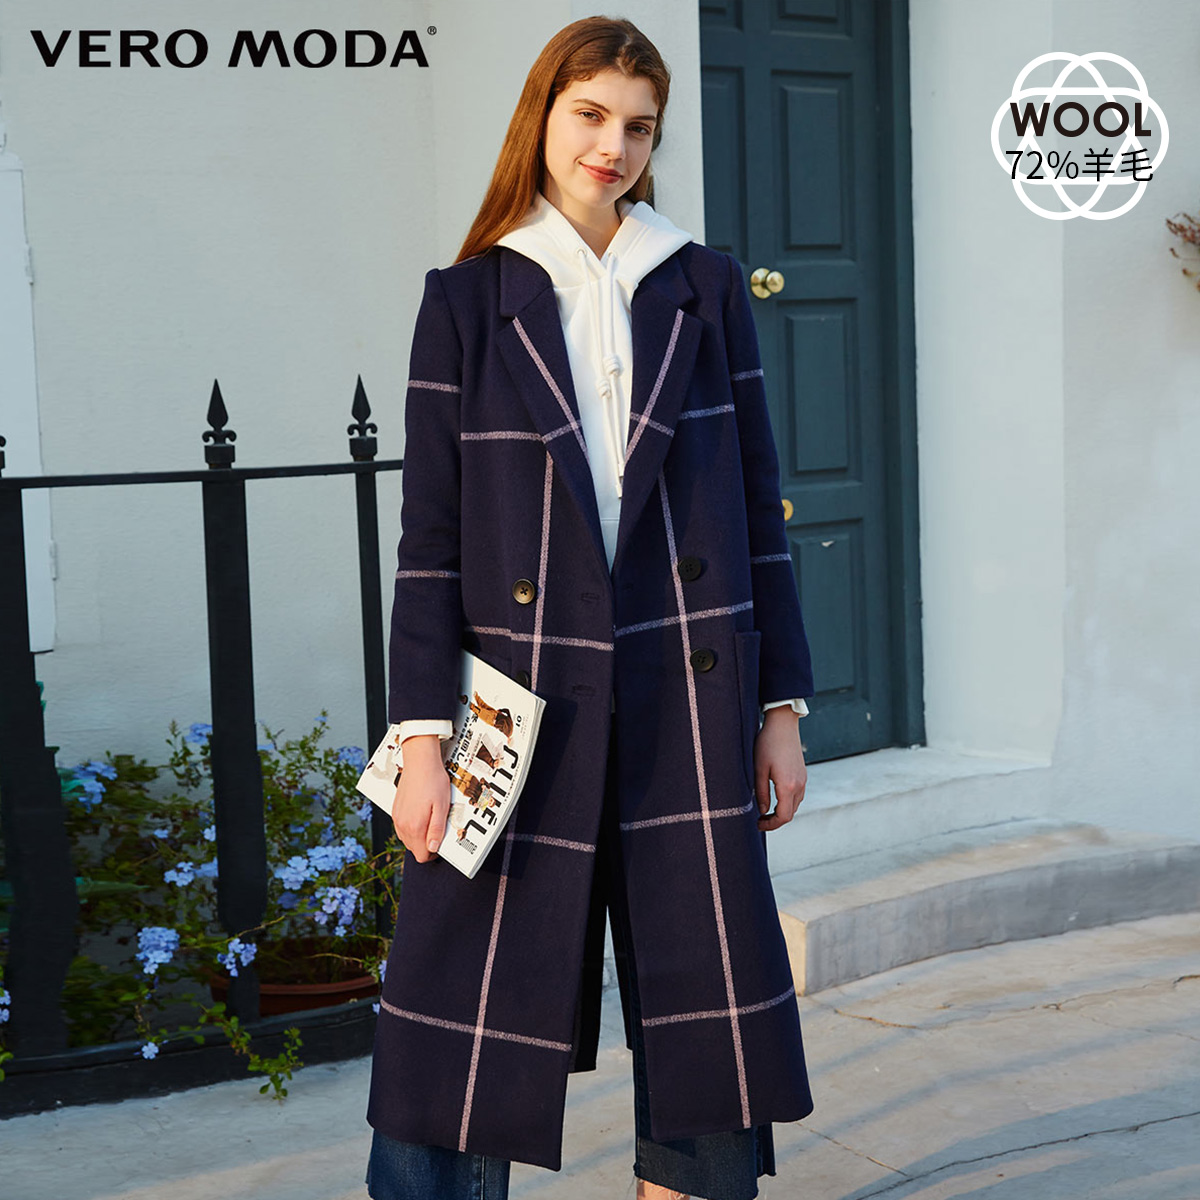 Vero moda2019 aww / sheepskin Plaid double breasted wool overcoat for women 319427501